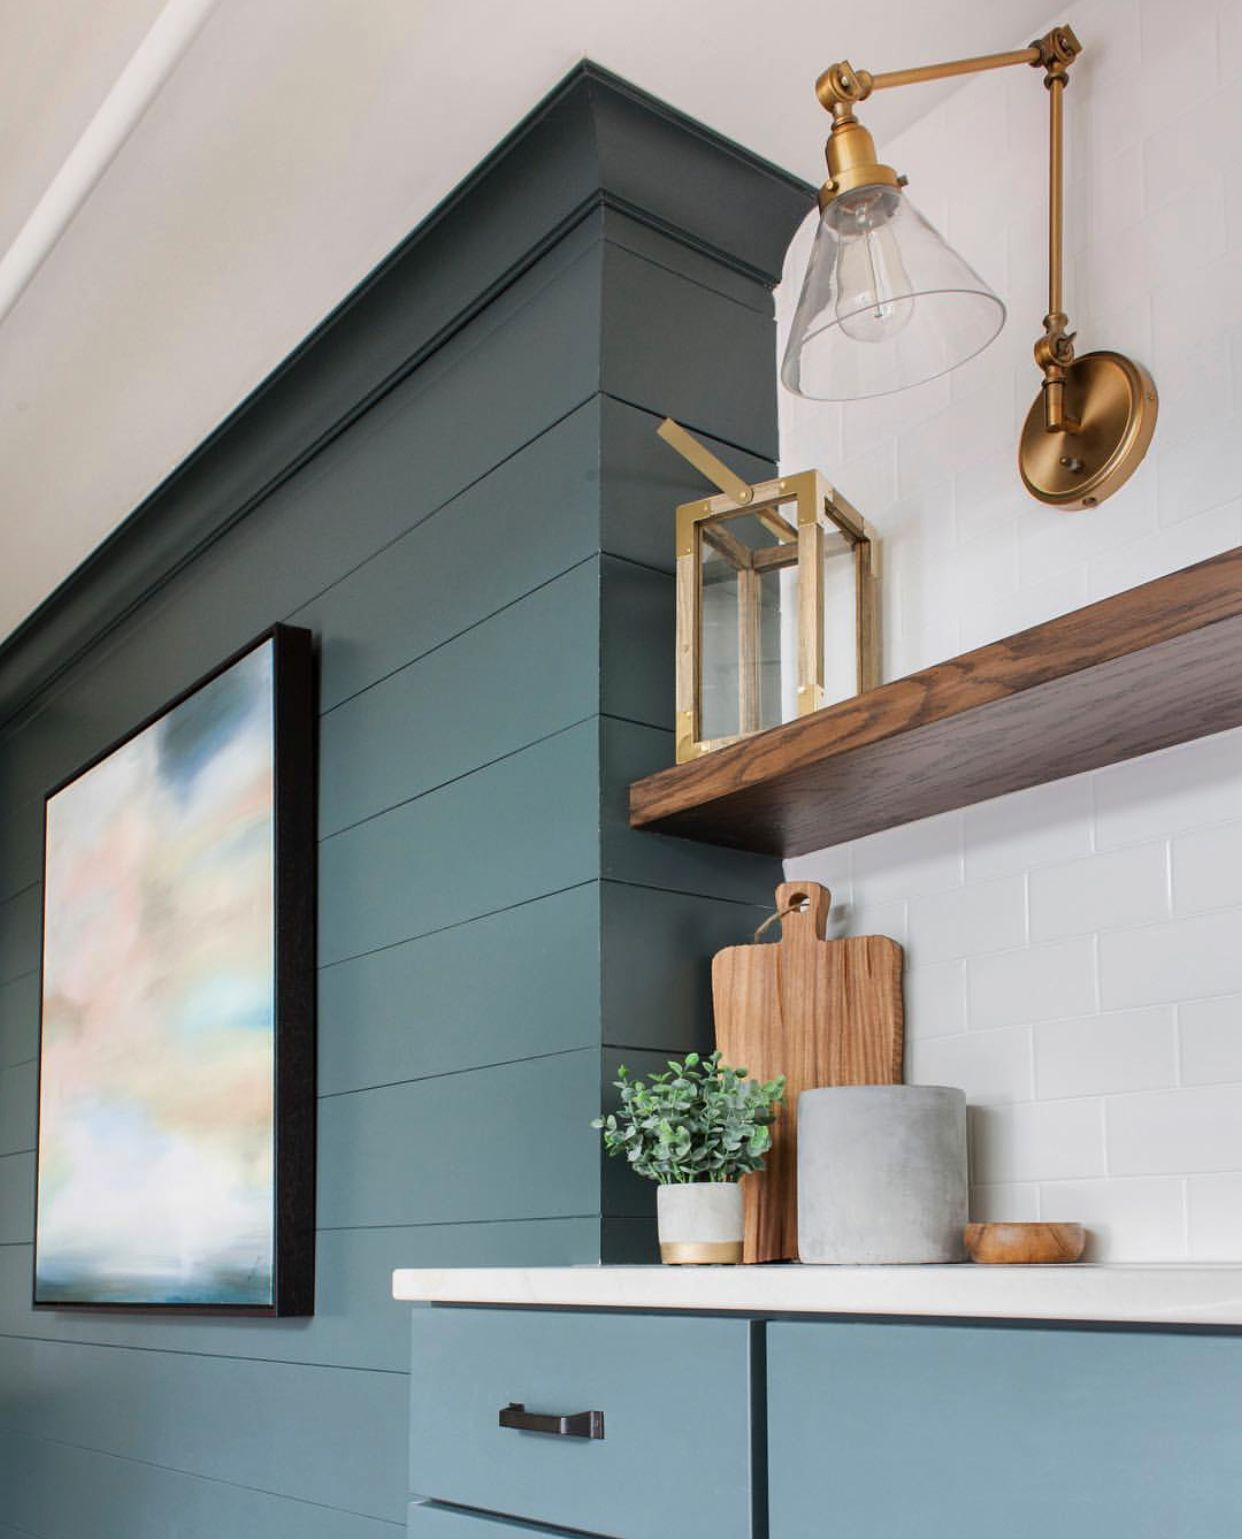 Paint Color Dark Pewter By Benjamin Moore Painted Shiplap Green Shiplap Living Room Design Inspiration